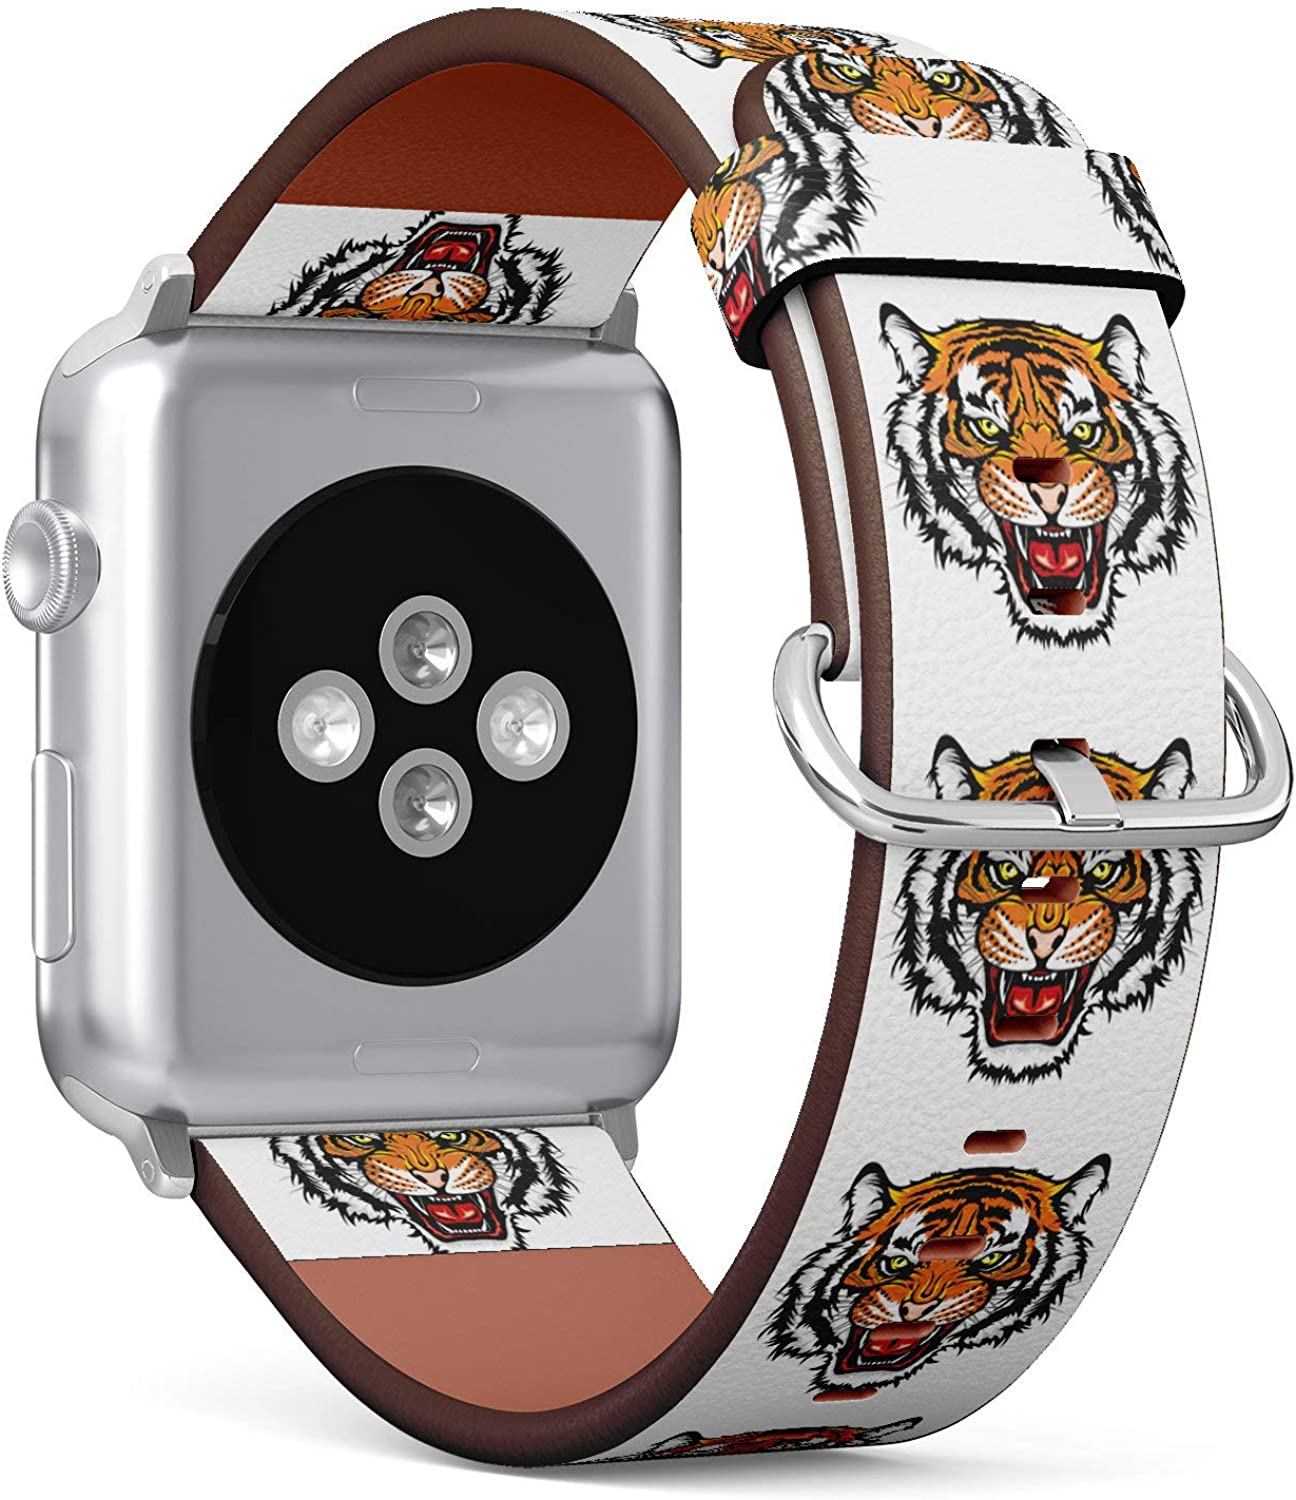 (Angry Tiger) Patterned Leather Wristband Strap for Apple Watch Series 4/3/2/1 gen,Replacement for iWatch 38mm / 40mm Bands